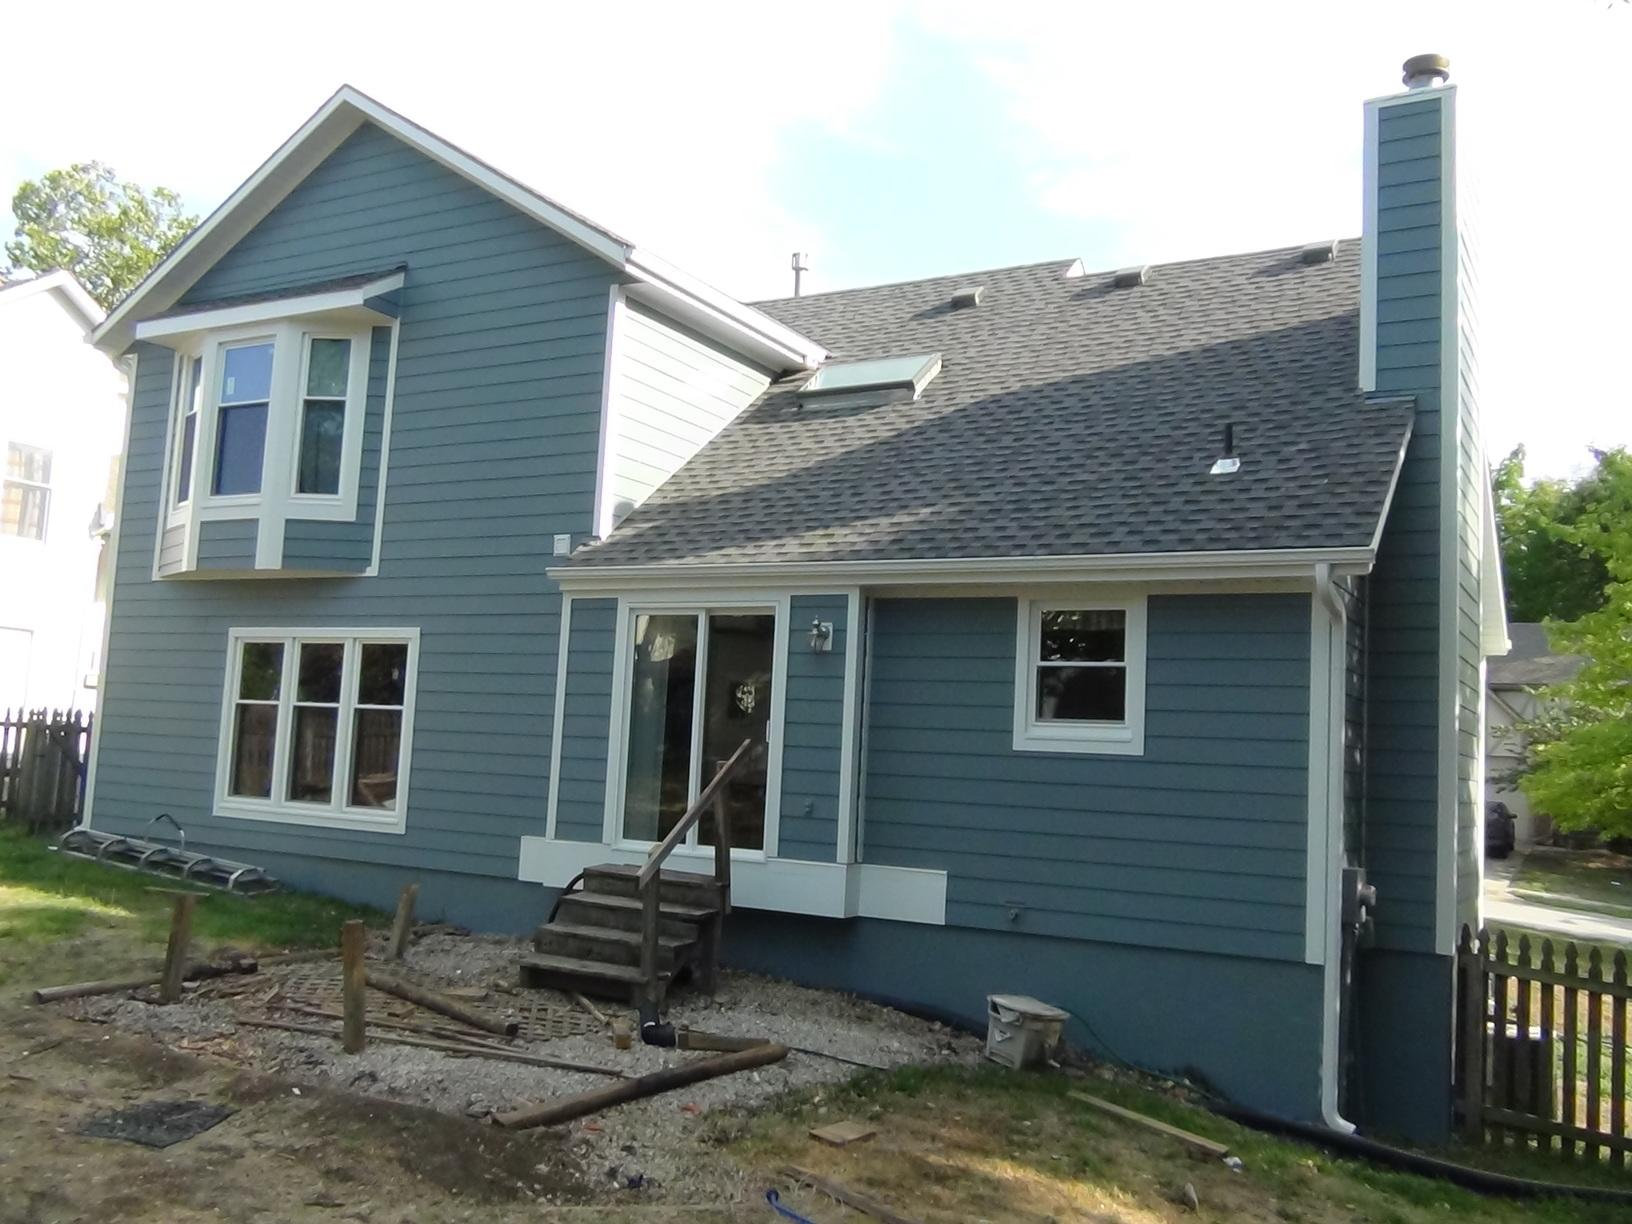 Siding and Window Installation in Overland Park, KS